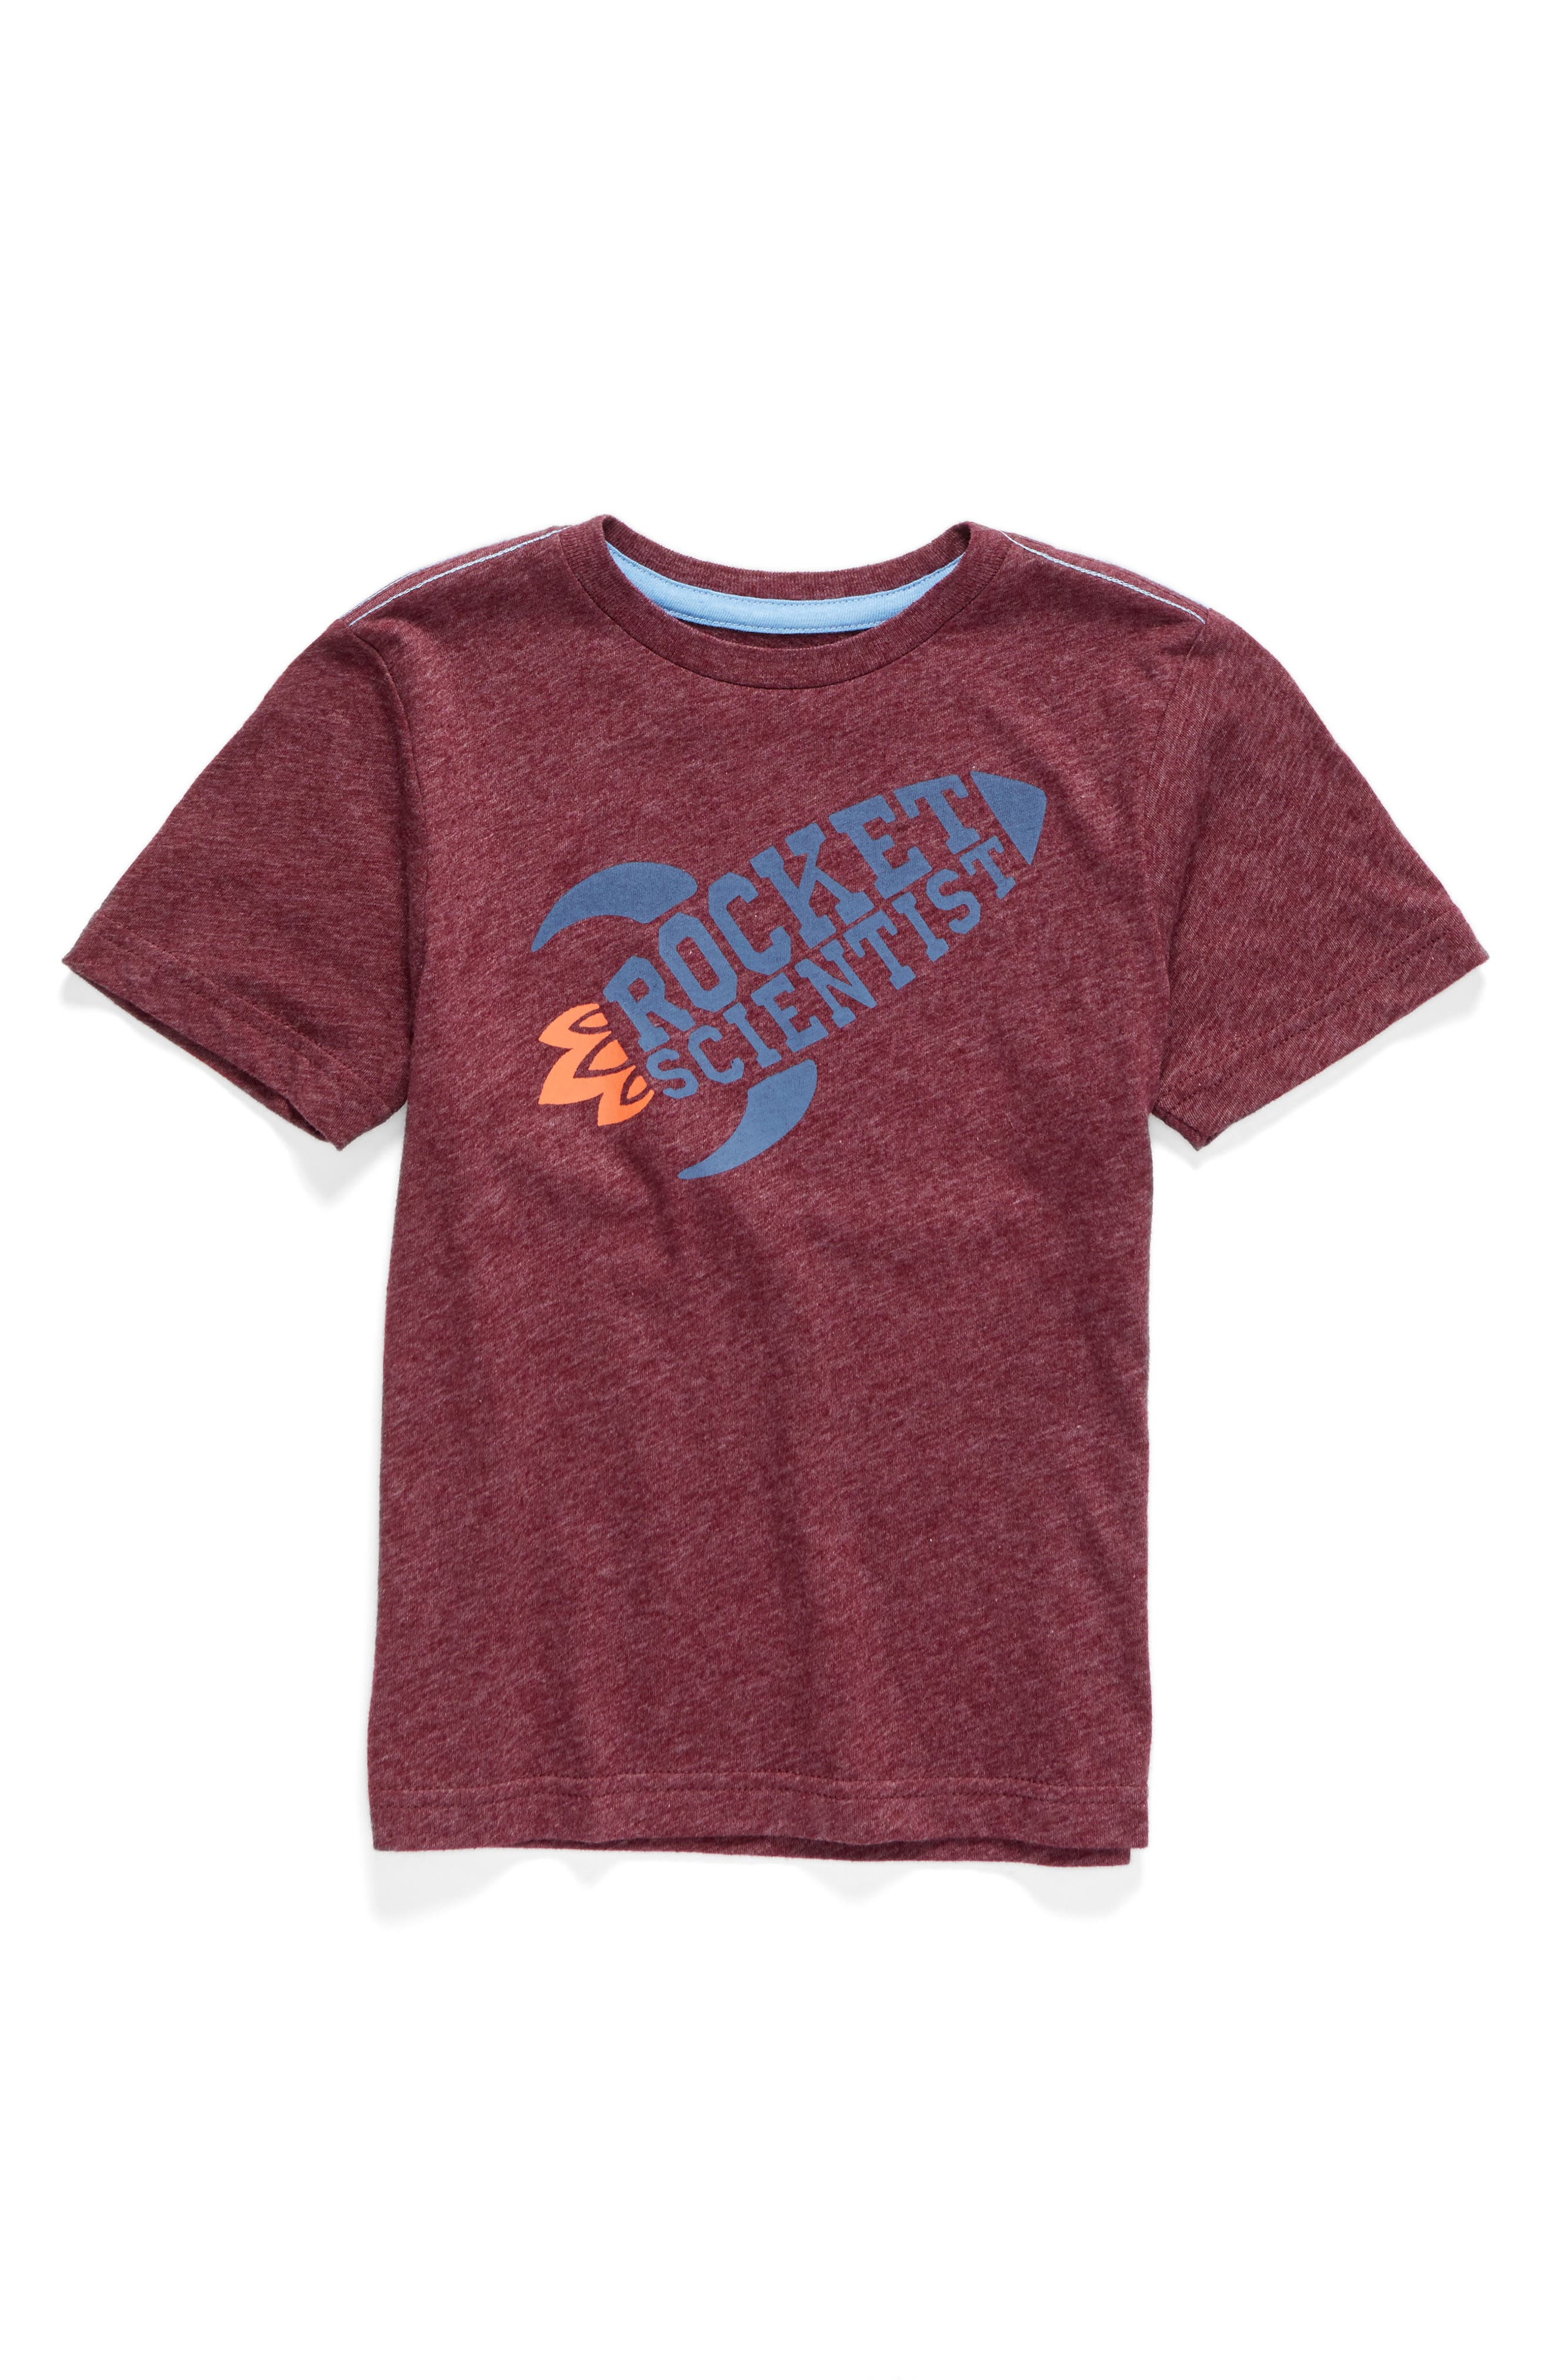 Tucker + Tate Graphic T-Shirt (Toddler Boys & Little Boys)